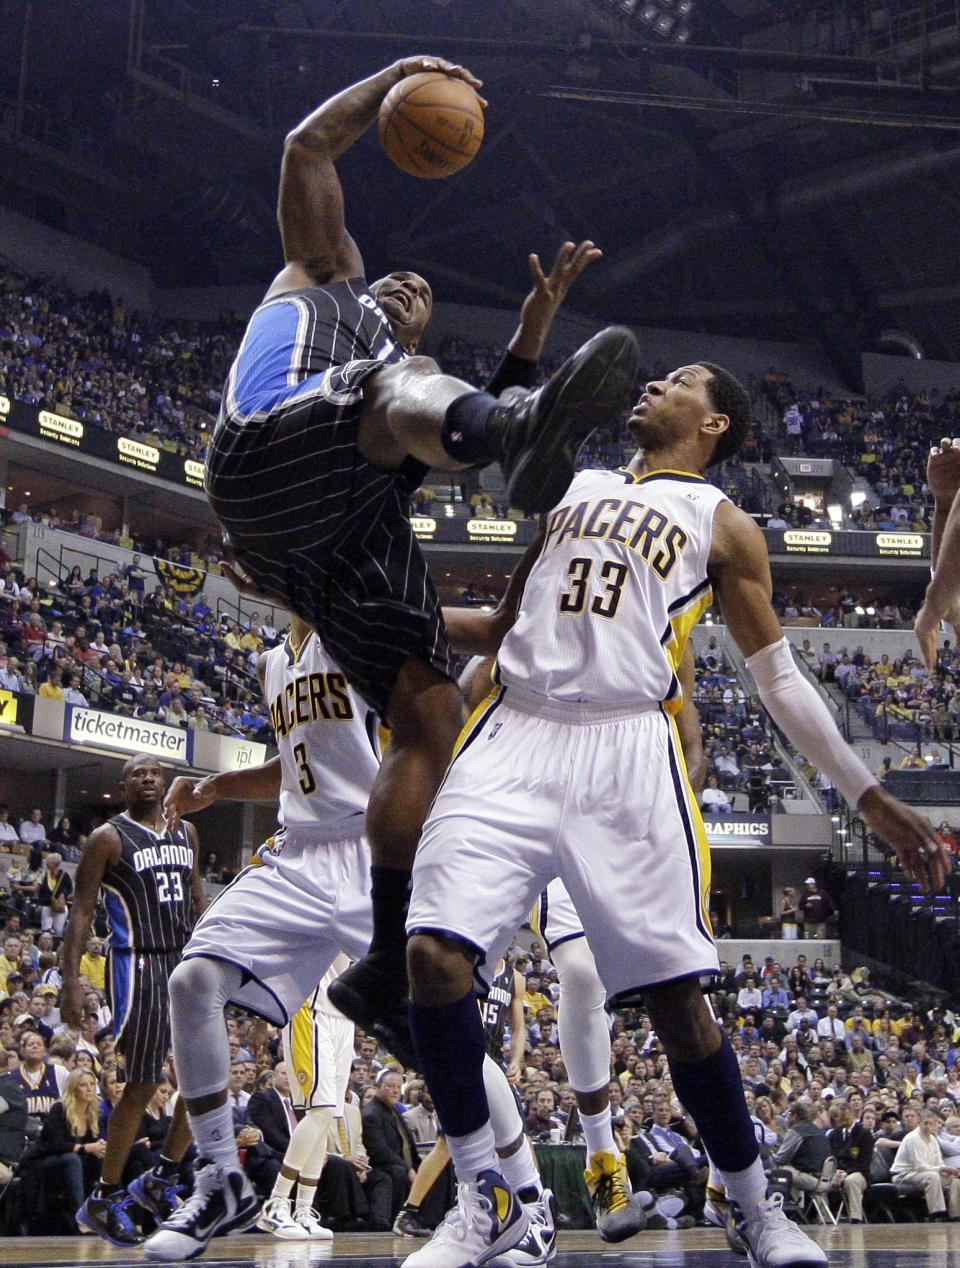 Orlando Magic forward Glen Davis, left, grabs a rebound in front of Indiana Pacers forward Danny Granger during the first half of the second game of an NBA first-round playoff basketball series, in Indianapolis on Monday, April 30, 2012. (AP Photo/Michael Conroy)